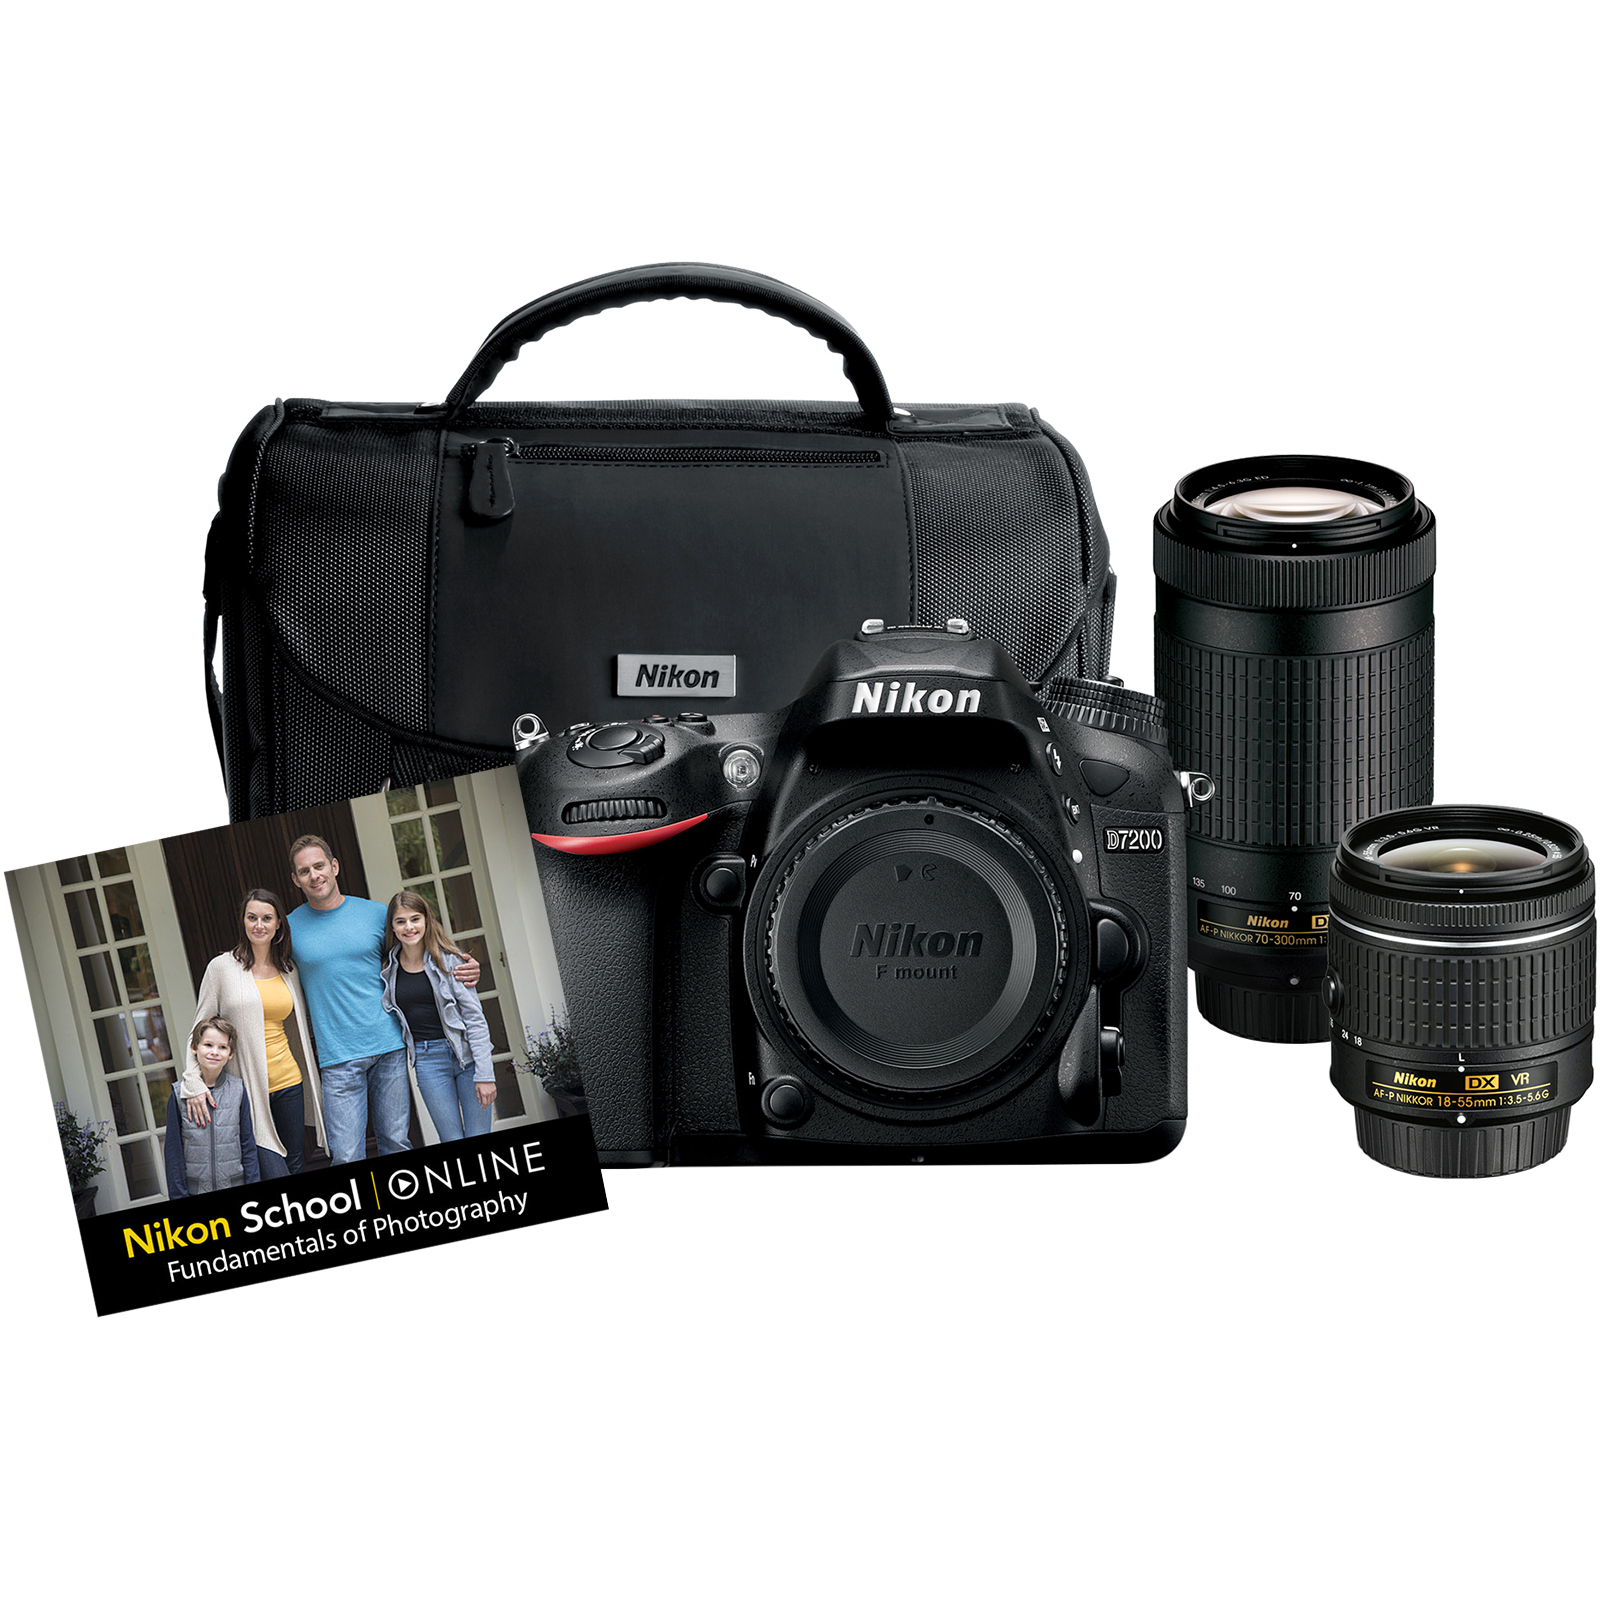 Nikon D7200 Digital SLR Camera with 18-55mm VR and 70-300mm DX AF-P Lenses & Case also includes Online Class by Nikon